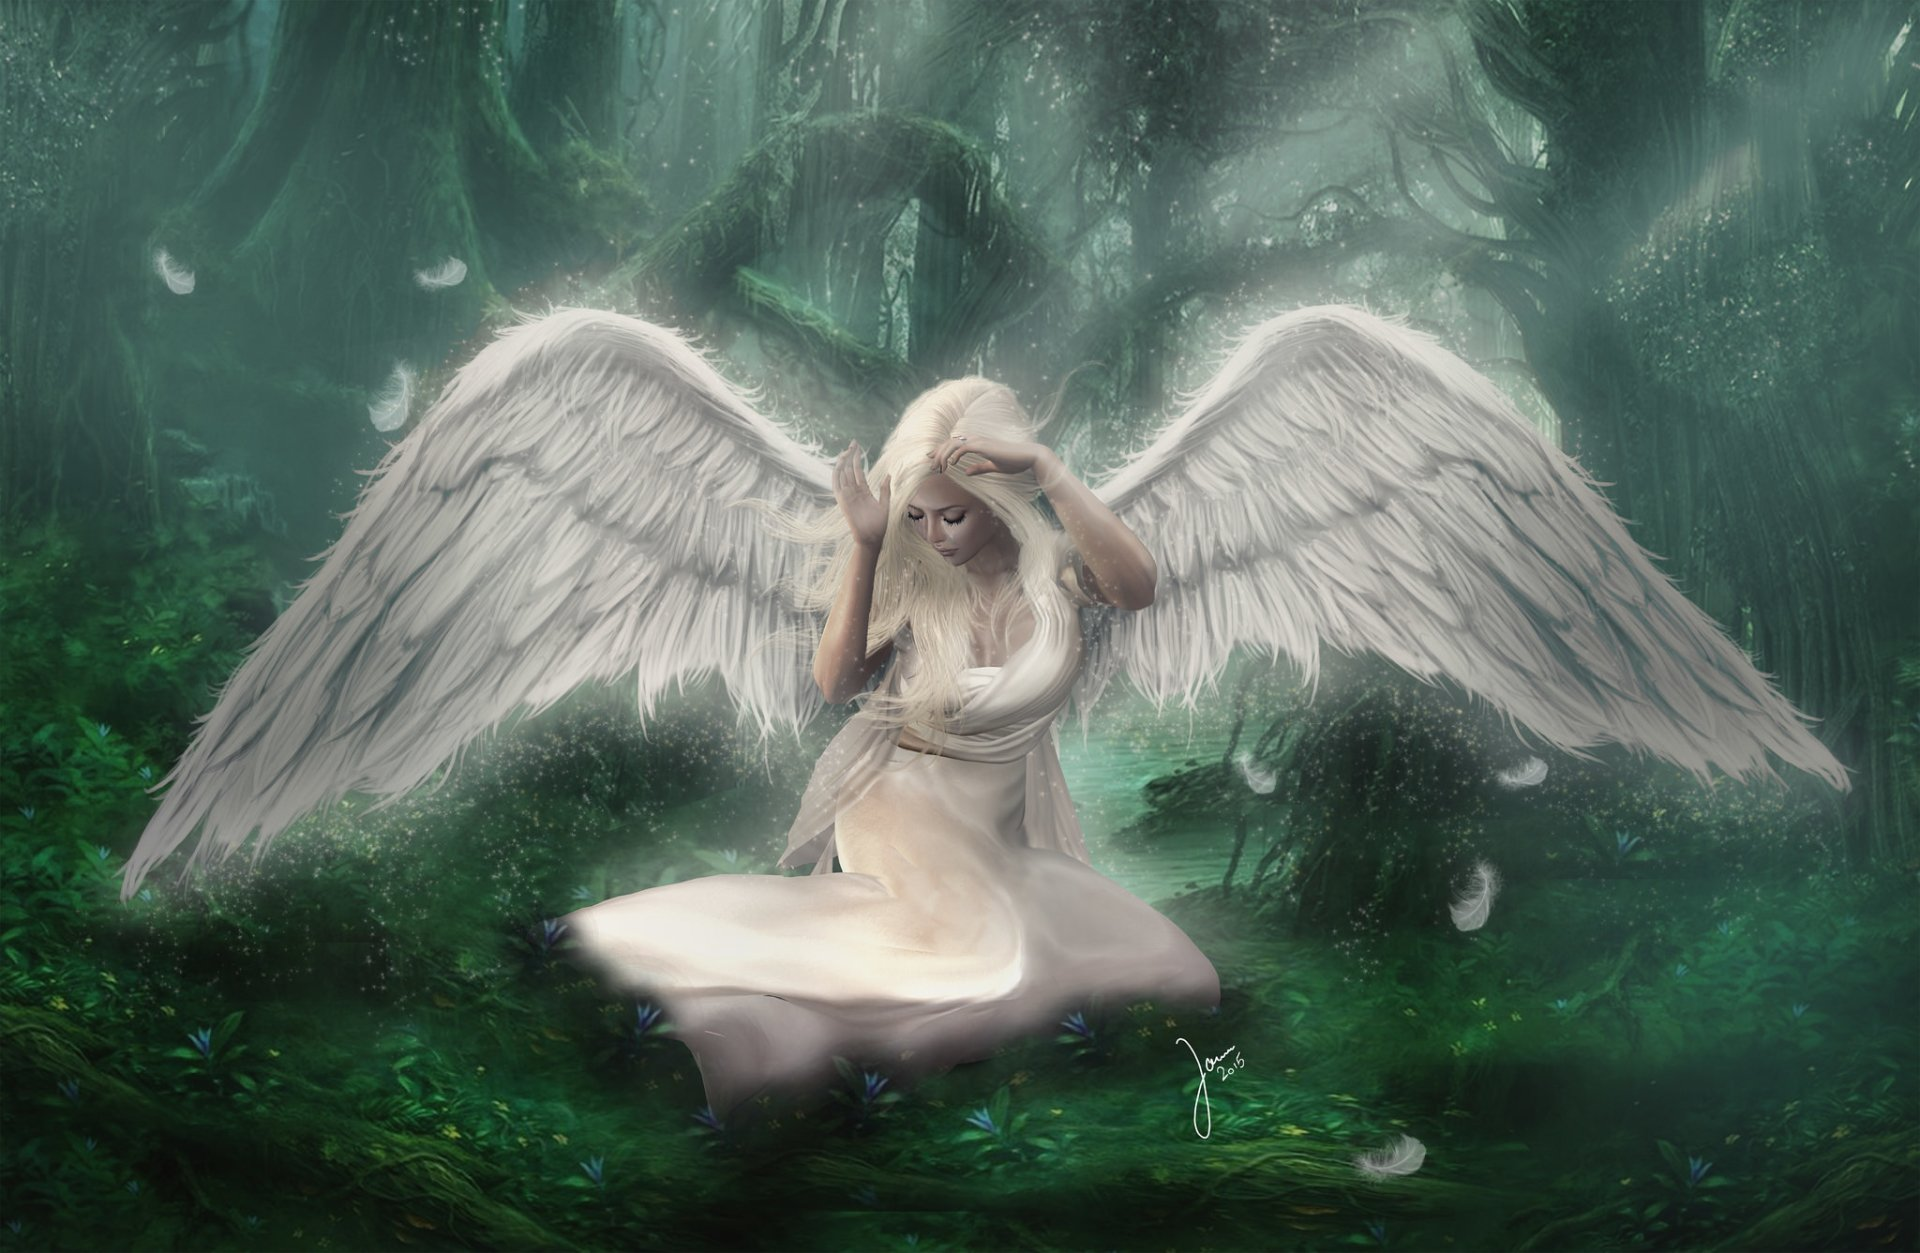 White angel in forest hd wallpaper background image 2048x1336 id 676865 wallpaper abyss - Sad angel wallpaper ...